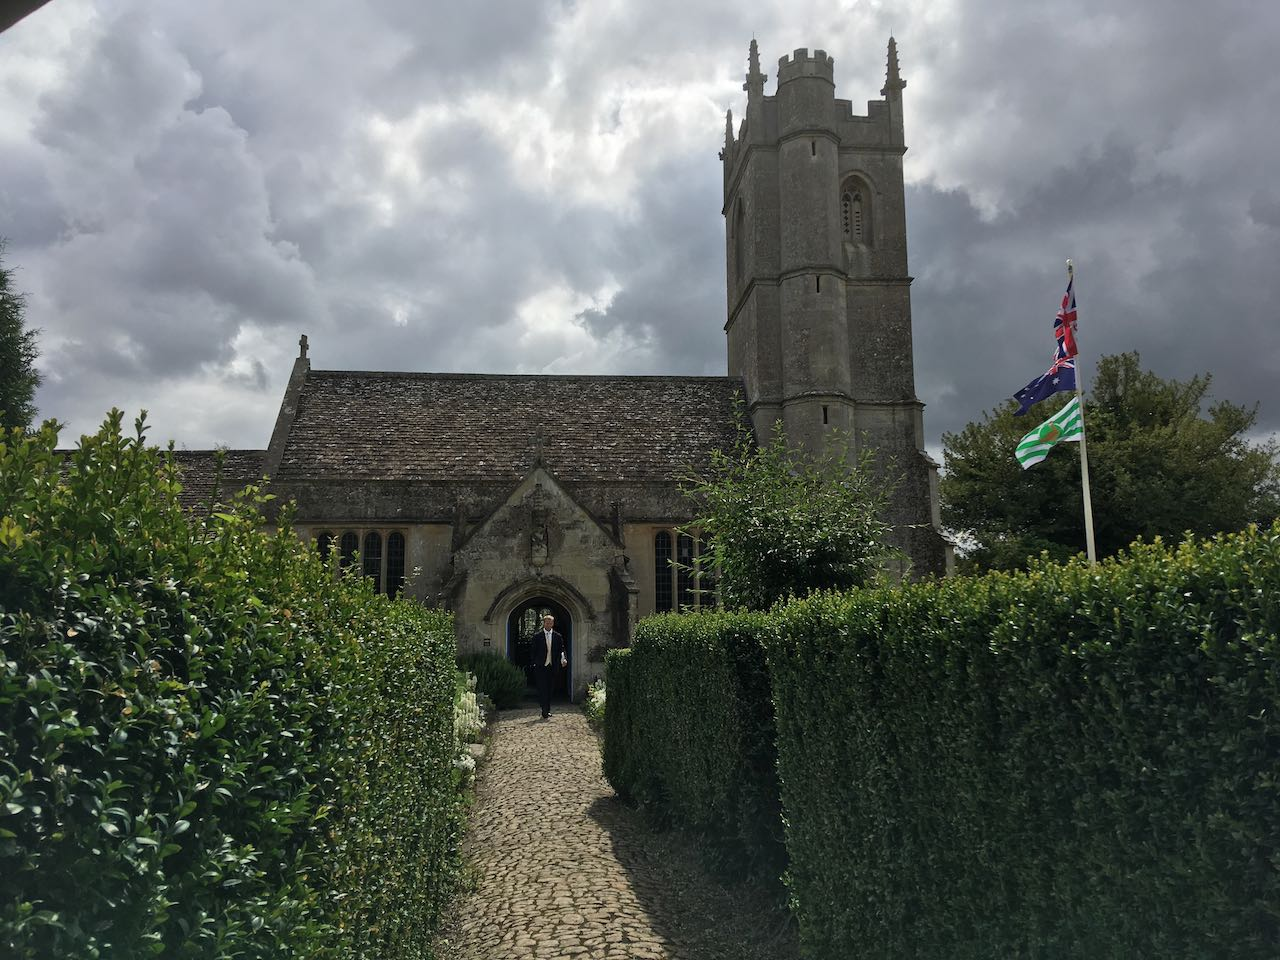 St Andrew's, Heddington